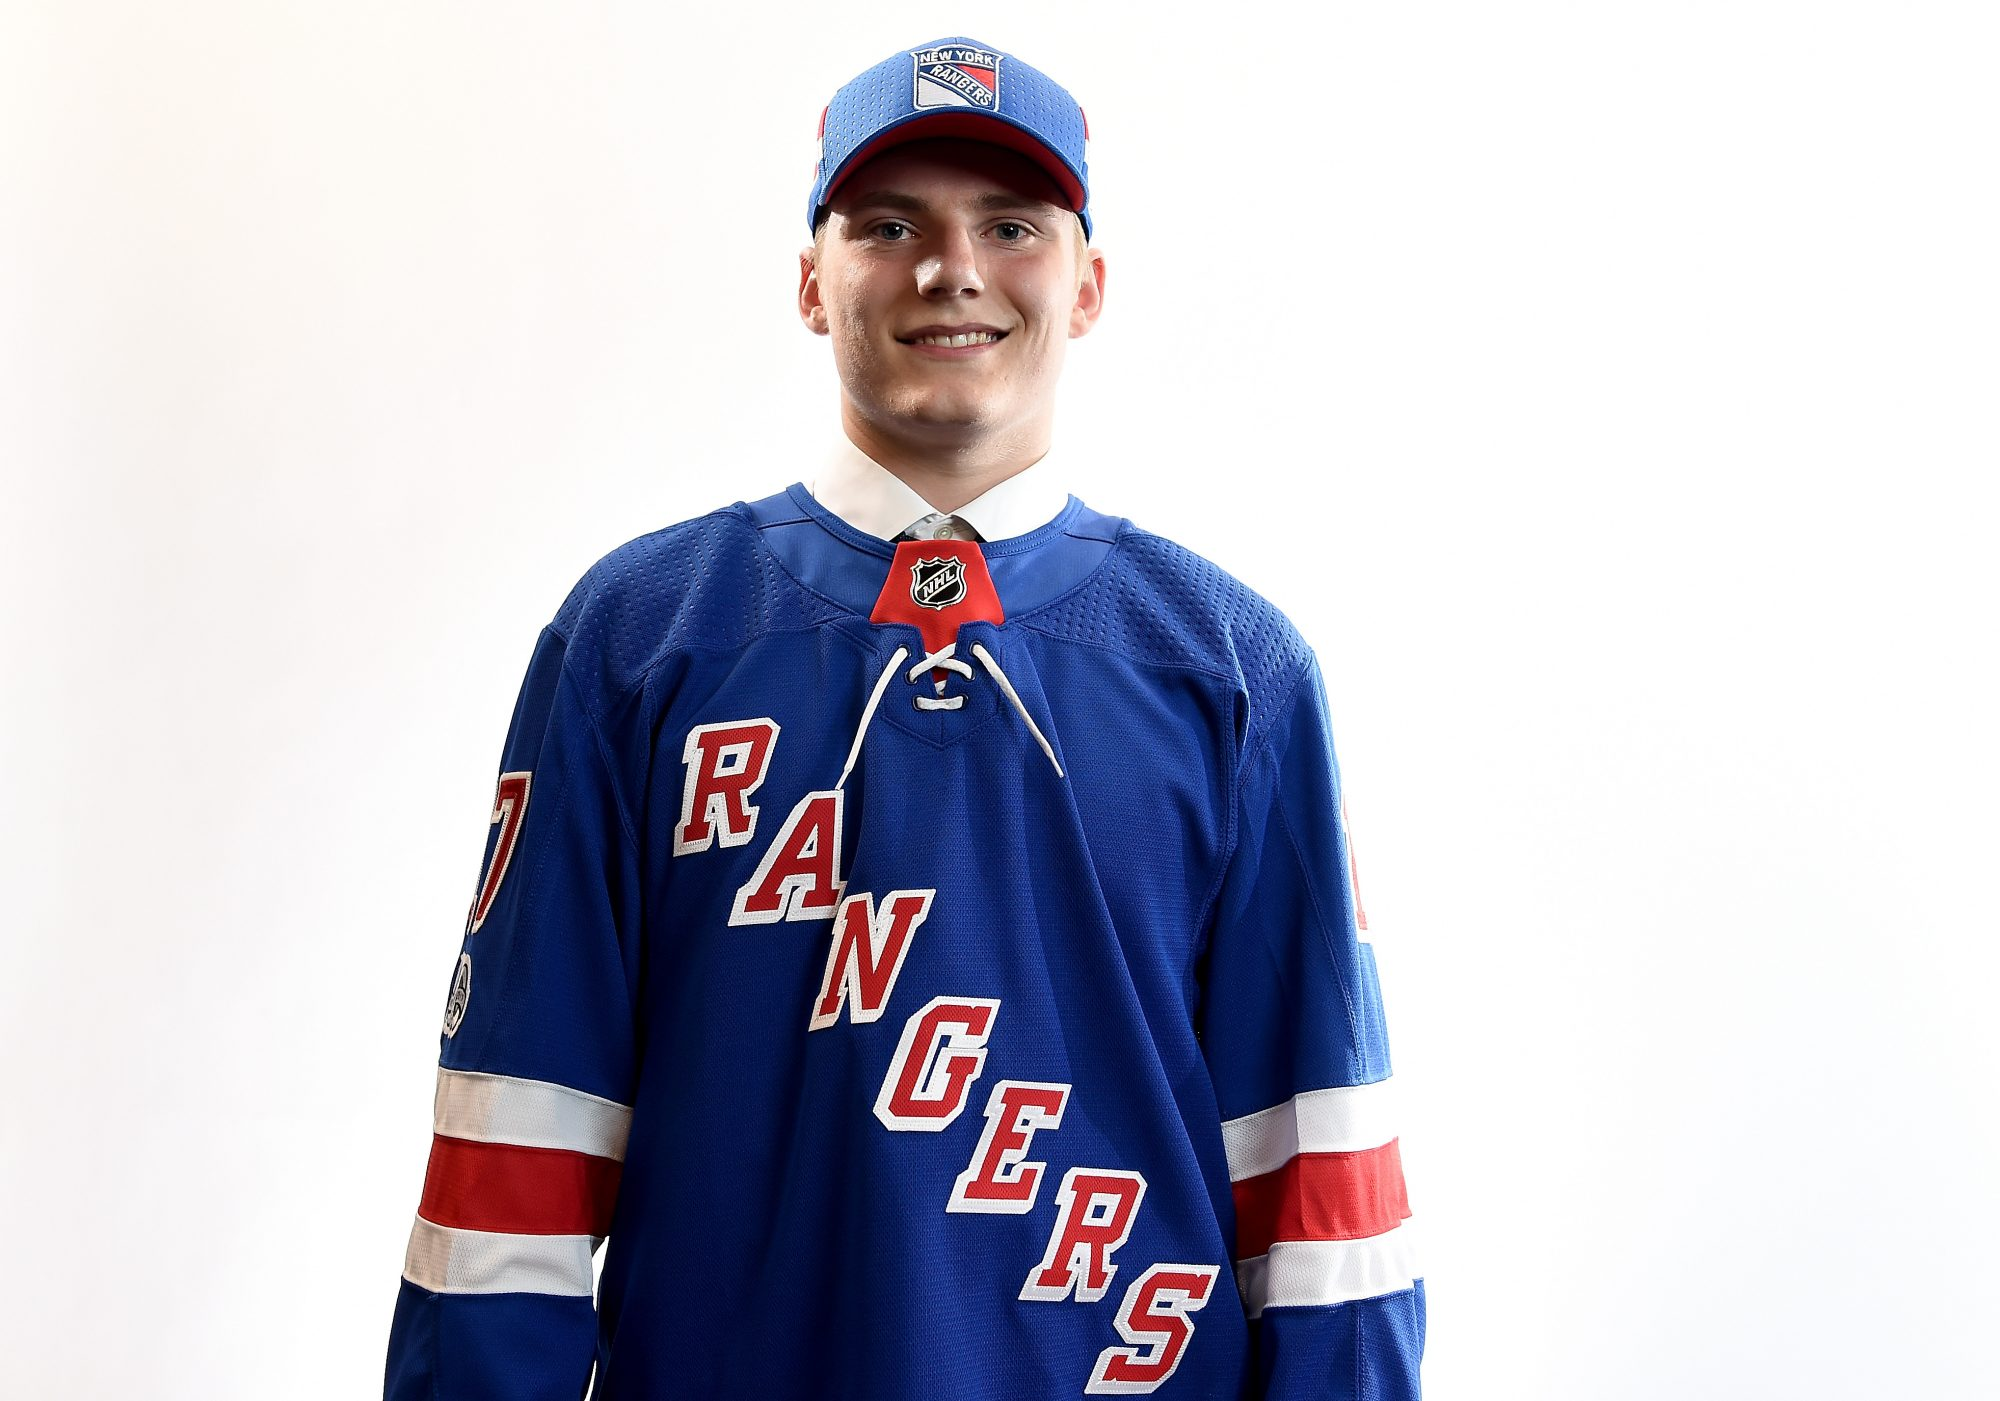 New York Rangers Prospect Lias Andersson Getting Recognized at WJSS